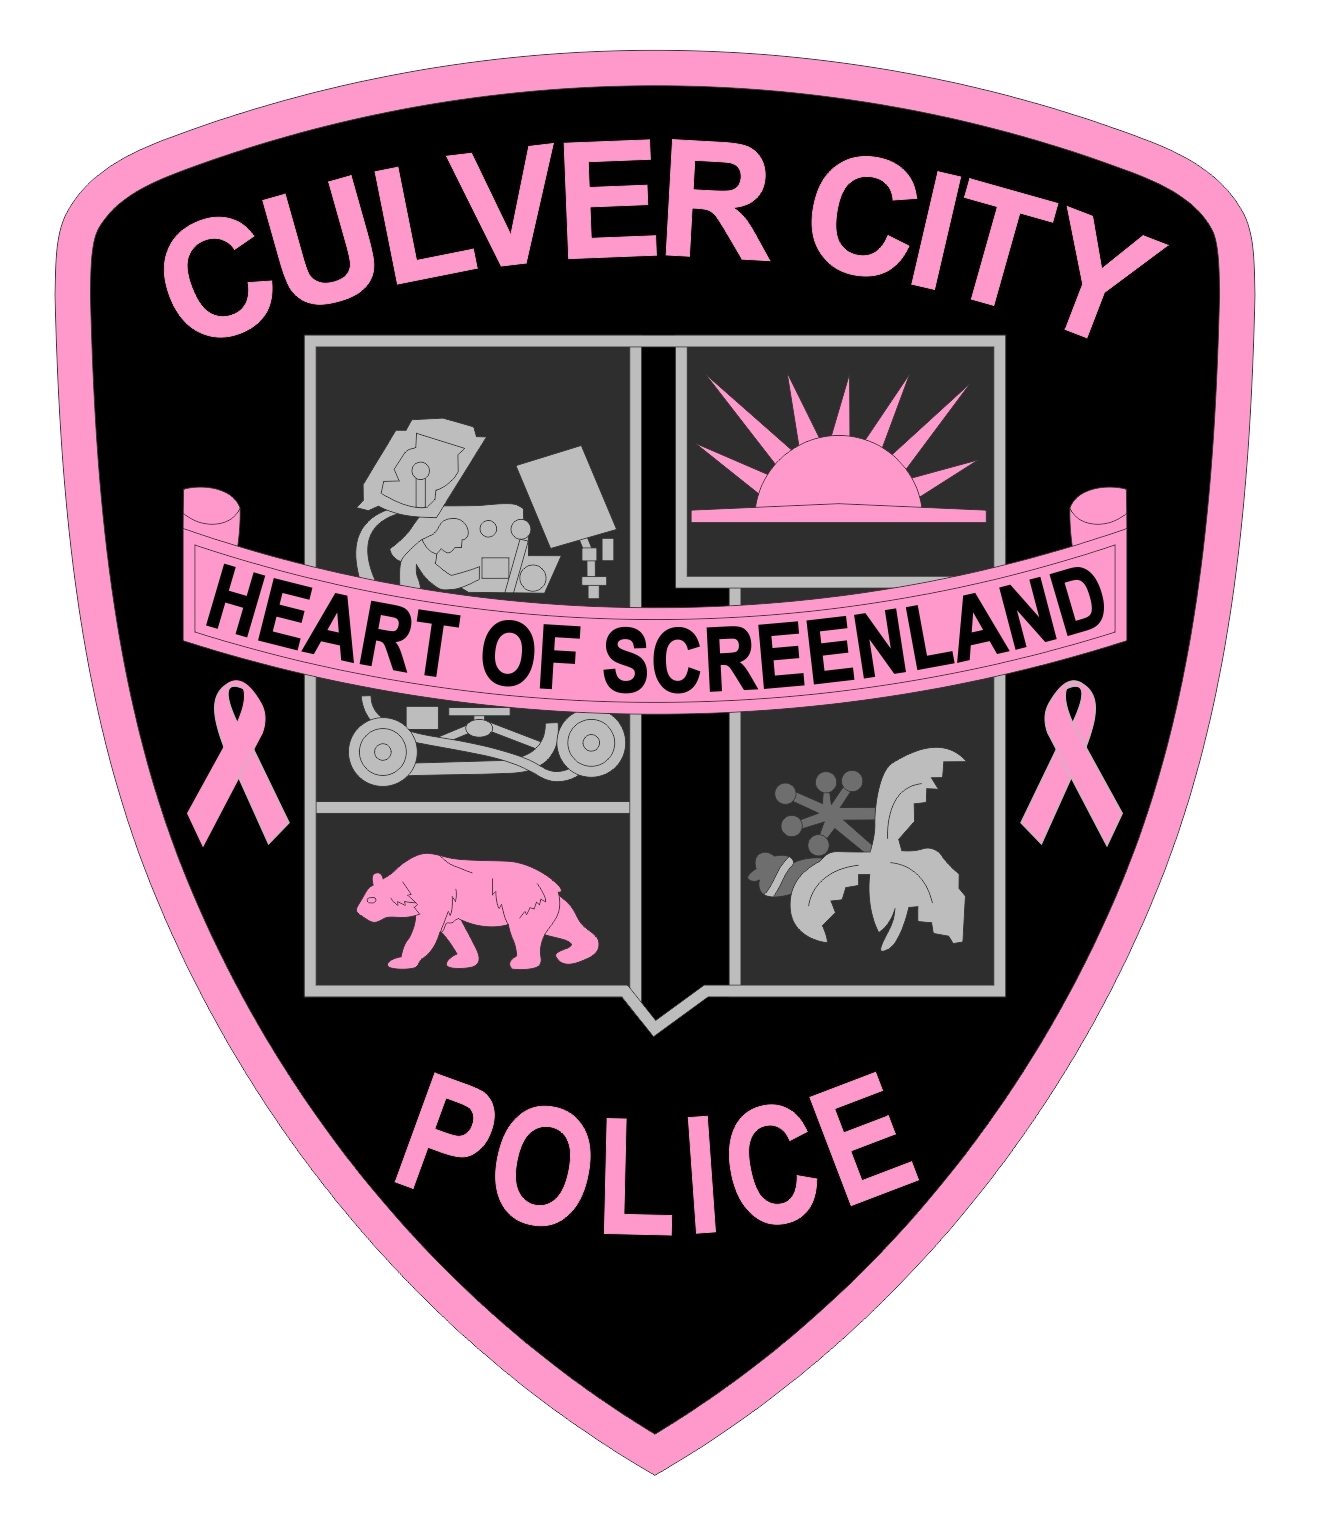 CULVER CITY POLICE - PINK PATCH 2017.jpg